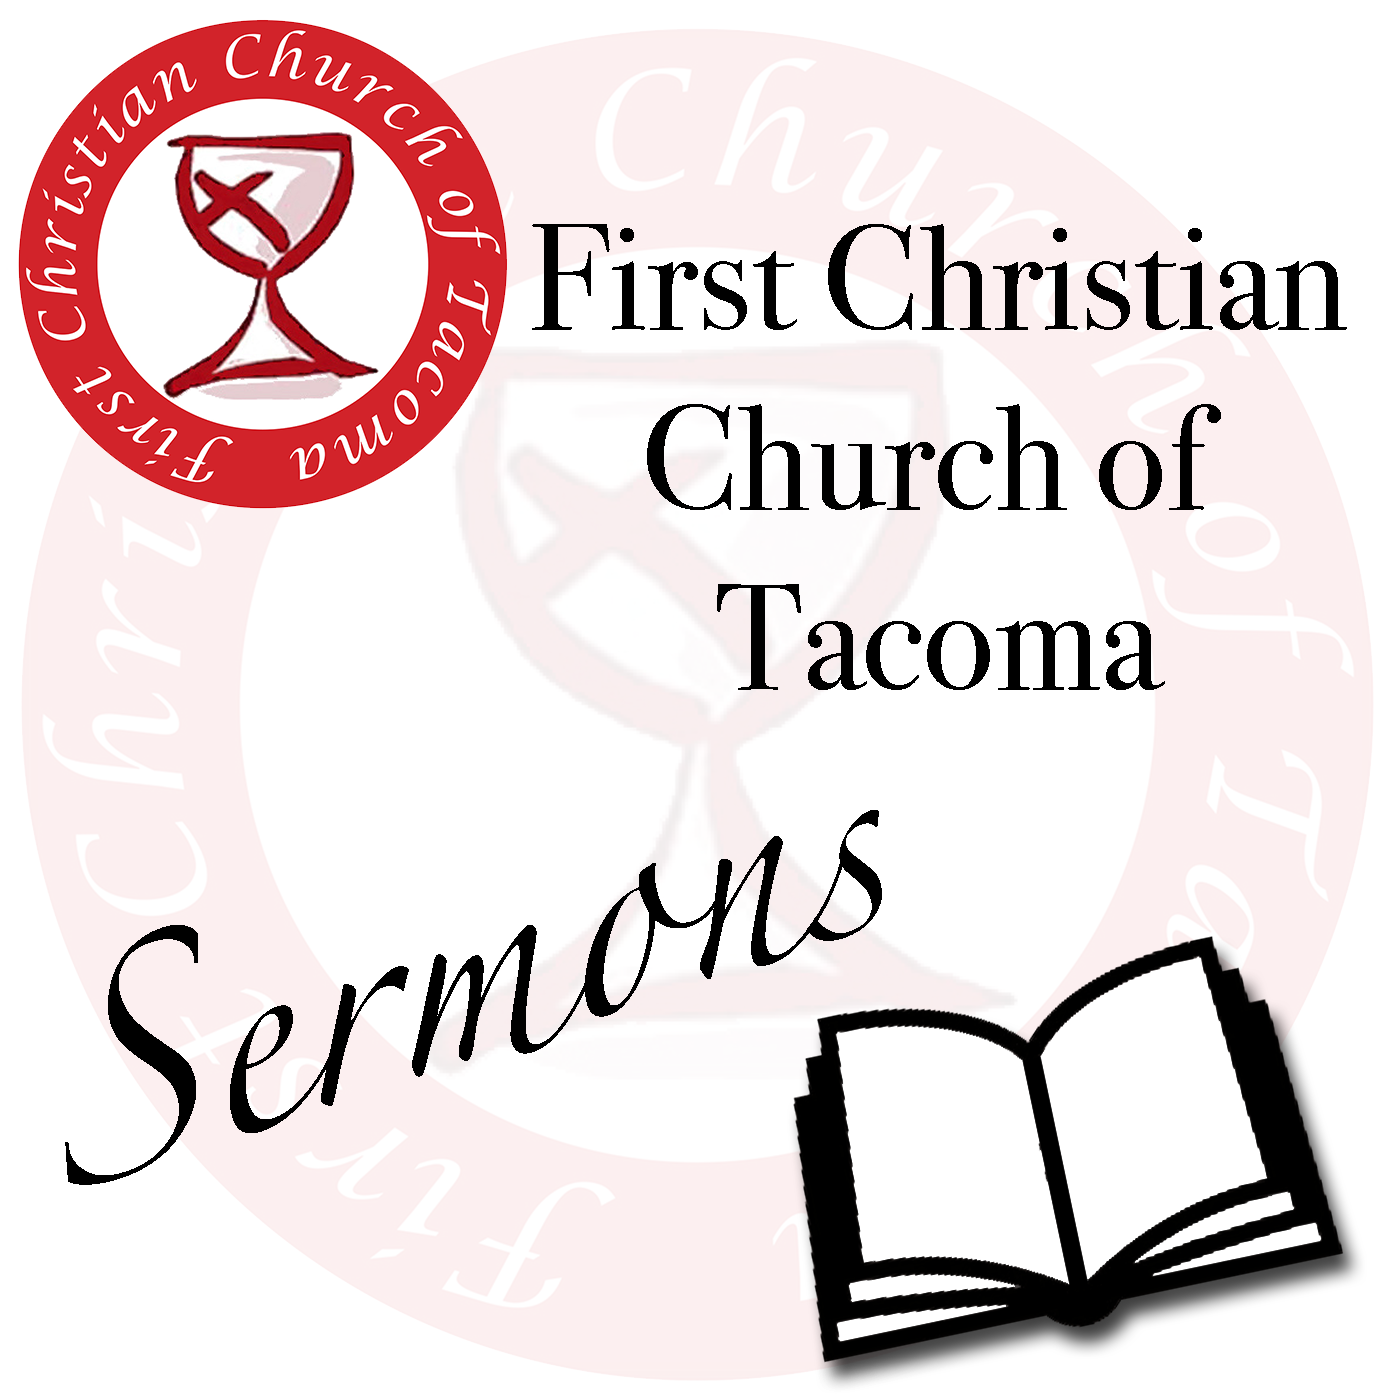 Sermons - First Christian Church of Tacoma